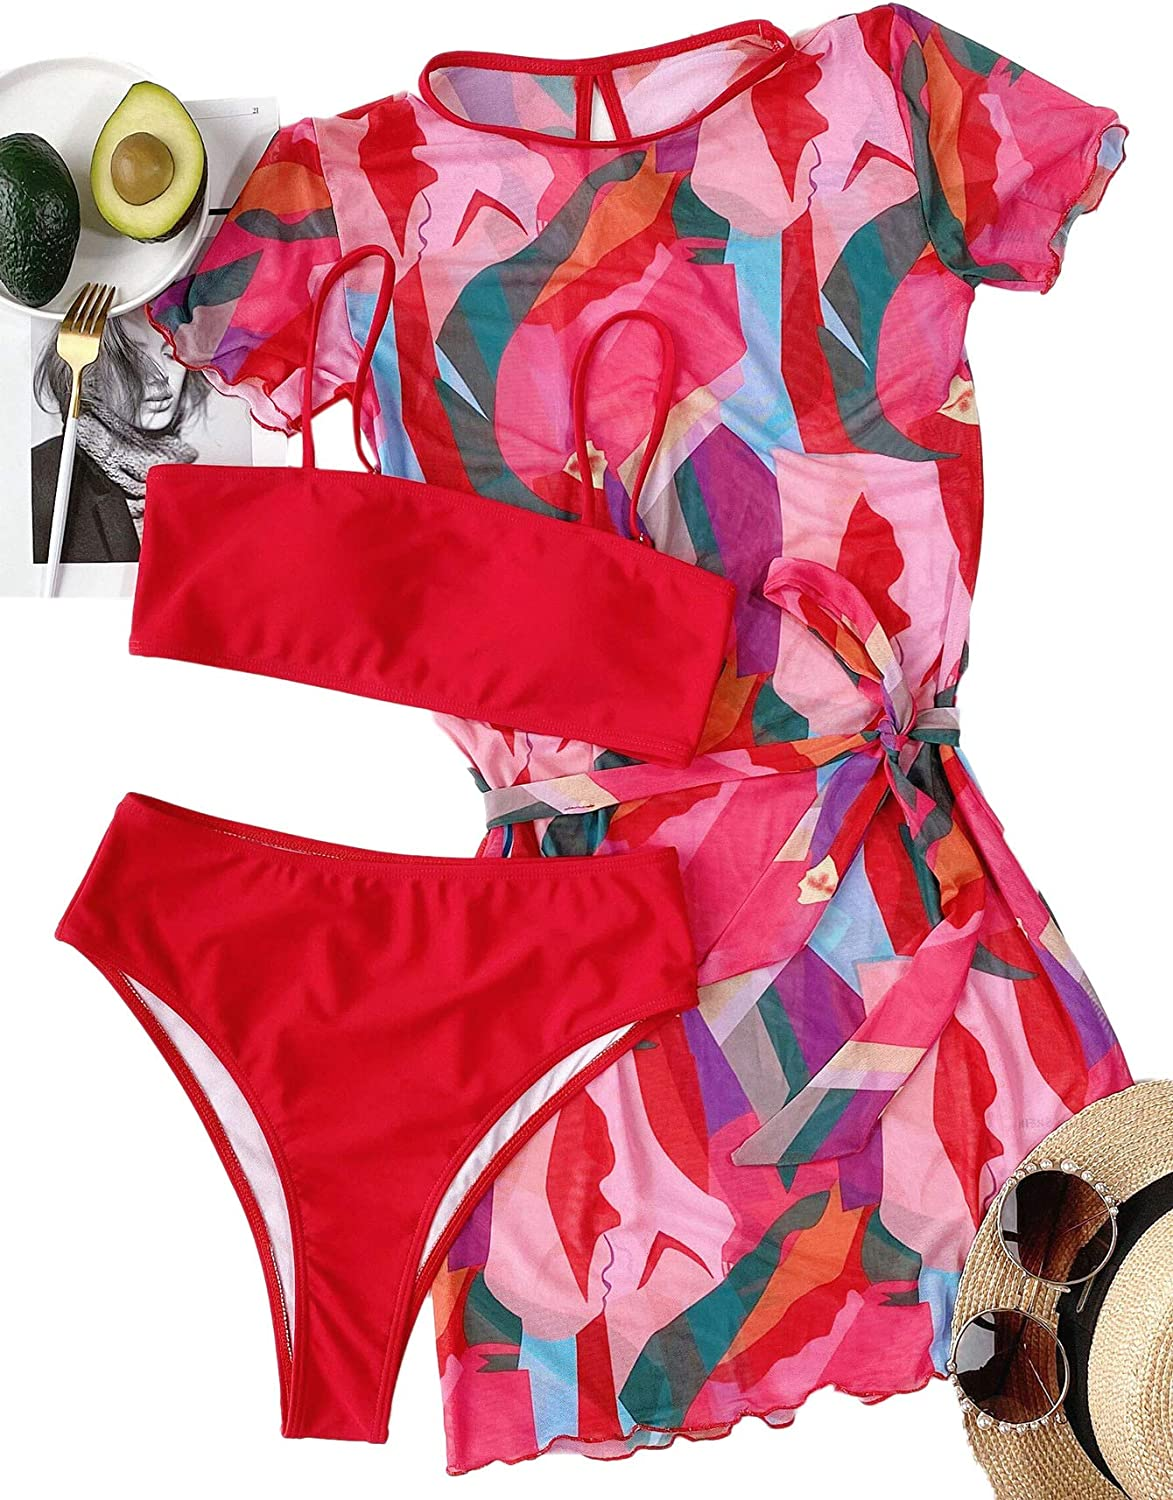 SOLY HUX Women's Color Block Bikini Bathing Suit with Belted Cover Up 3 Piece Swimsuits